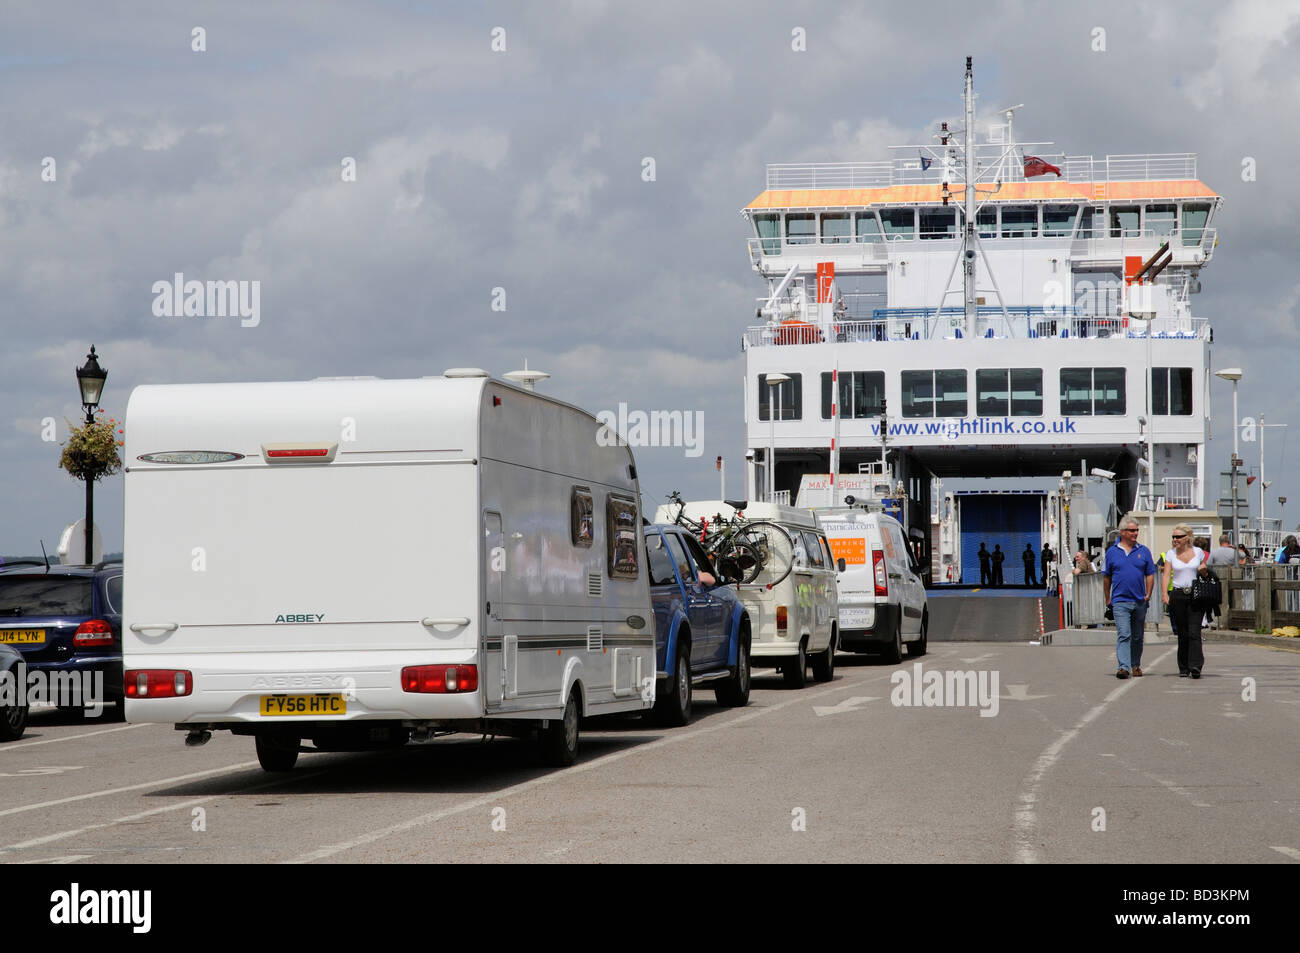 Vehicular traffic waiting to embark onto Wightlink Isle of Wight service ferry at Yarmouth southern England UK - Stock Image